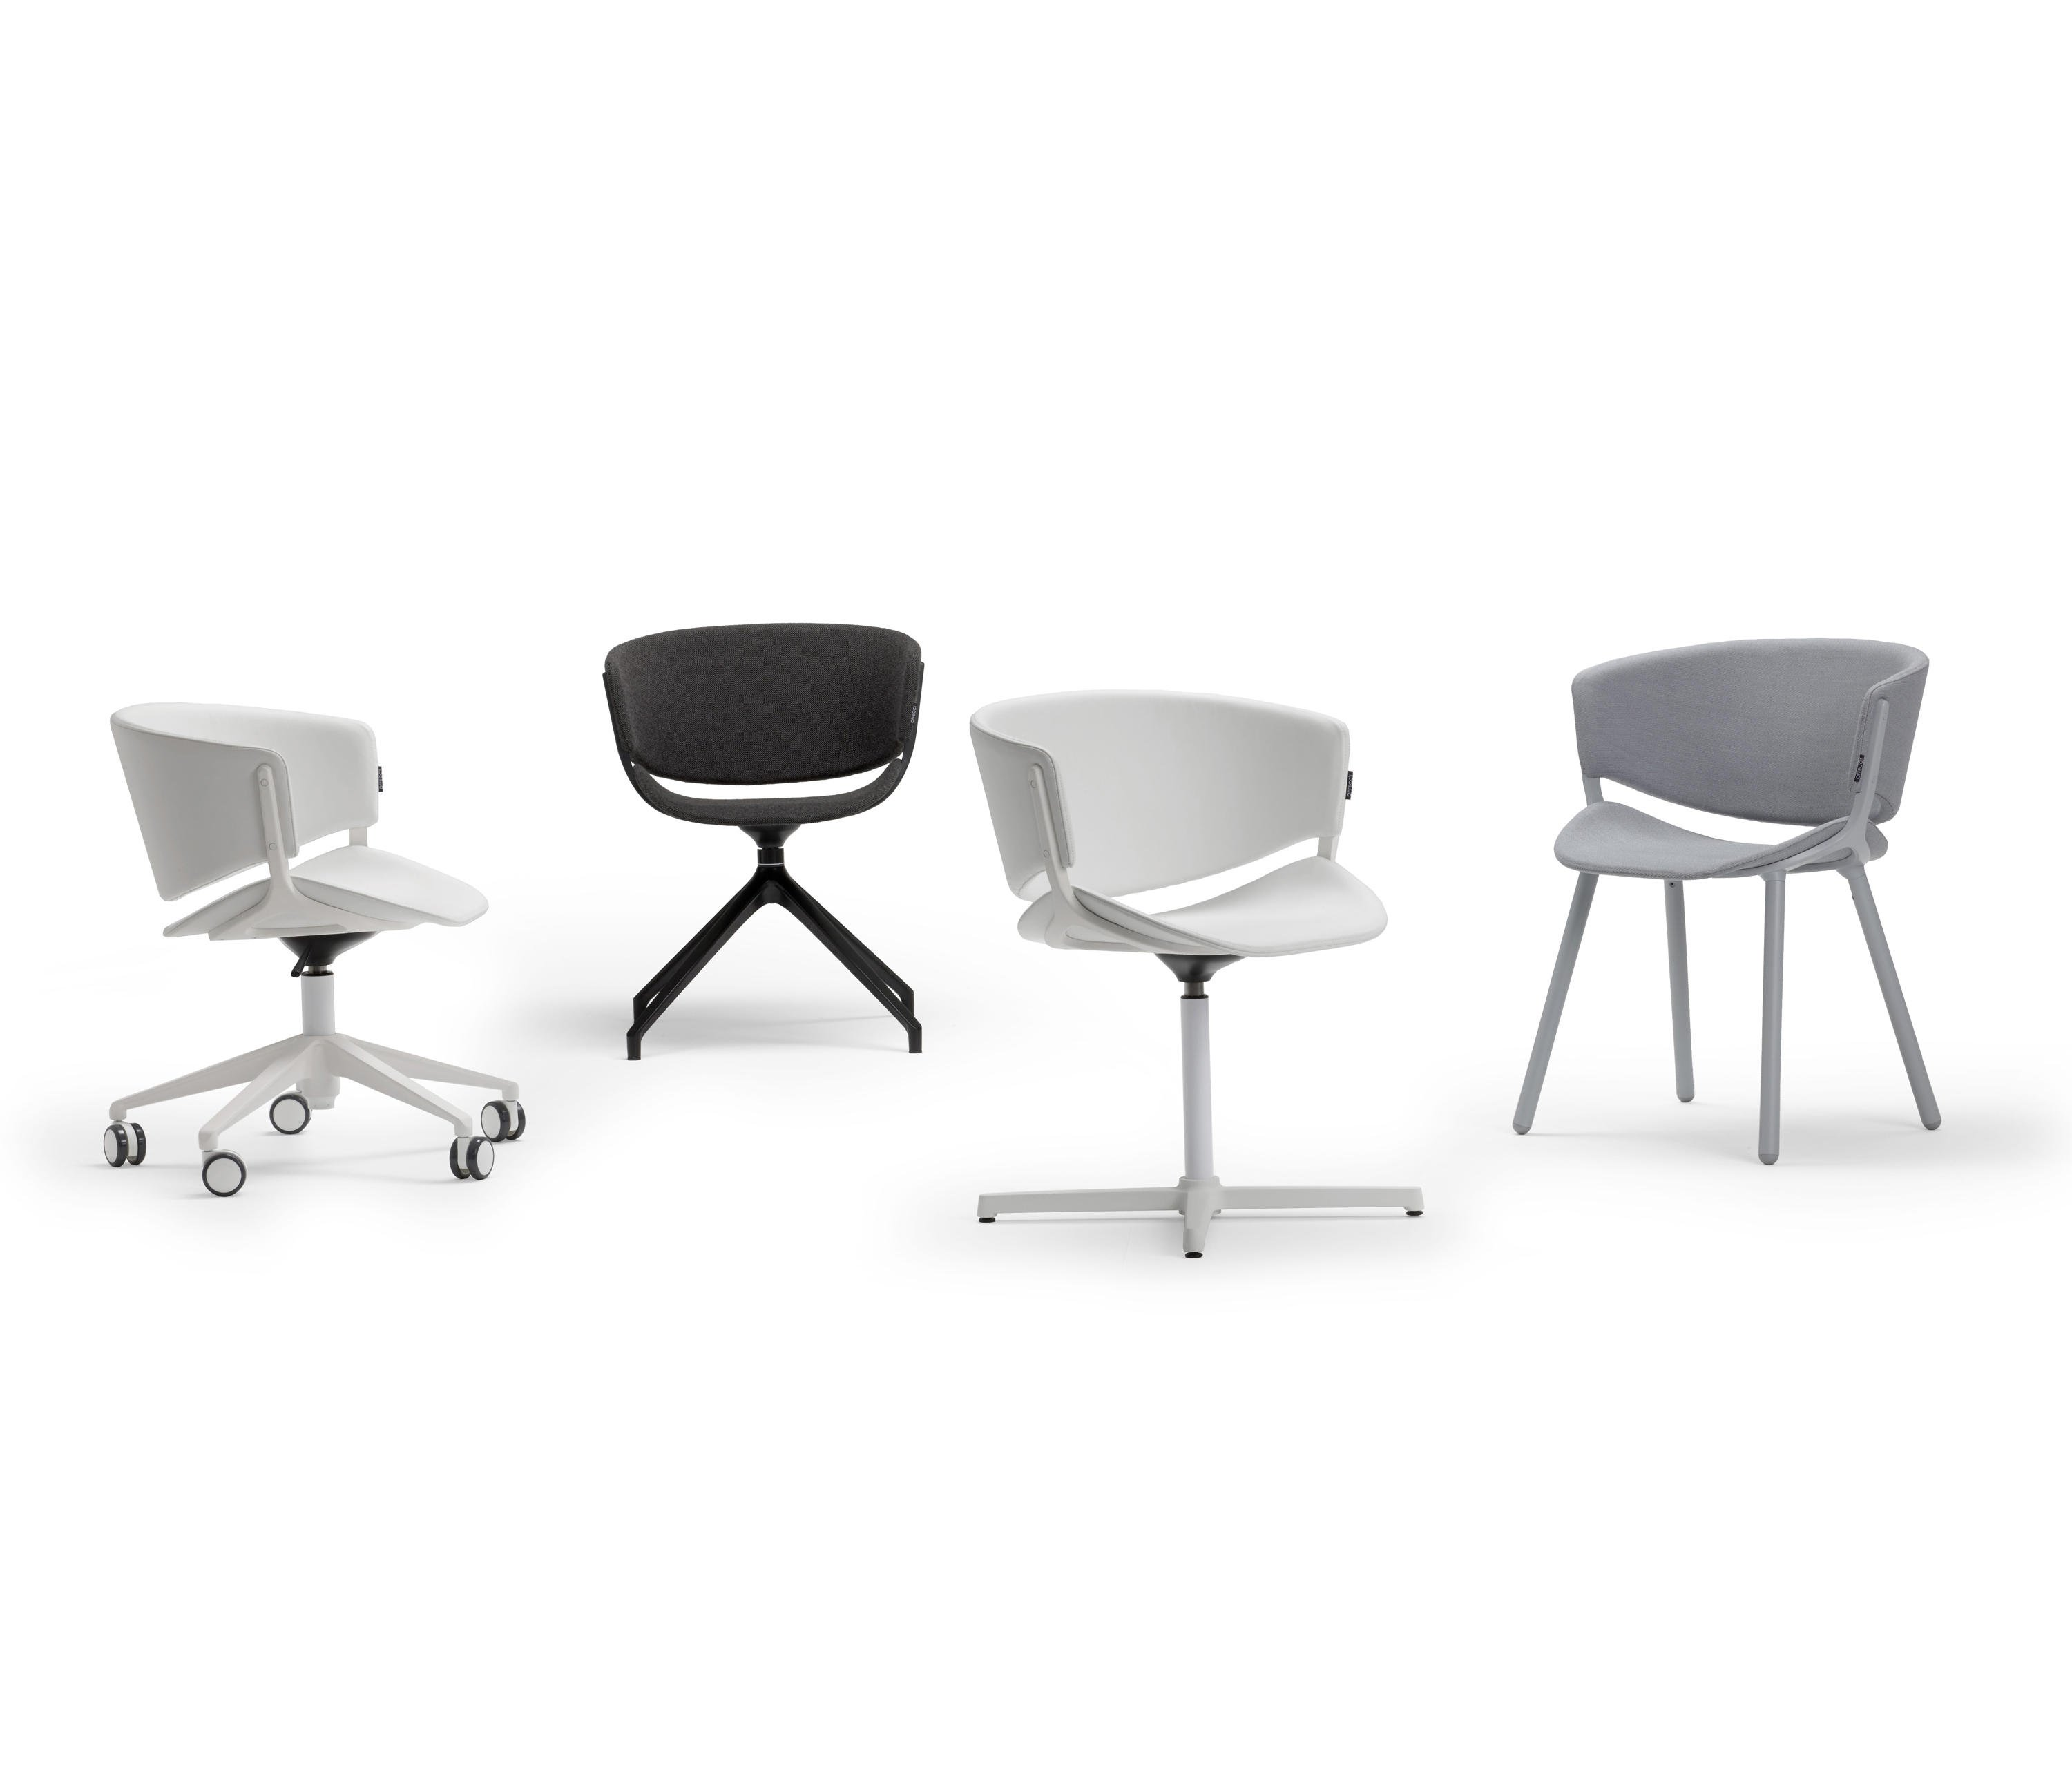 Phoenix Chairs by Luca Nichetto for Offecct